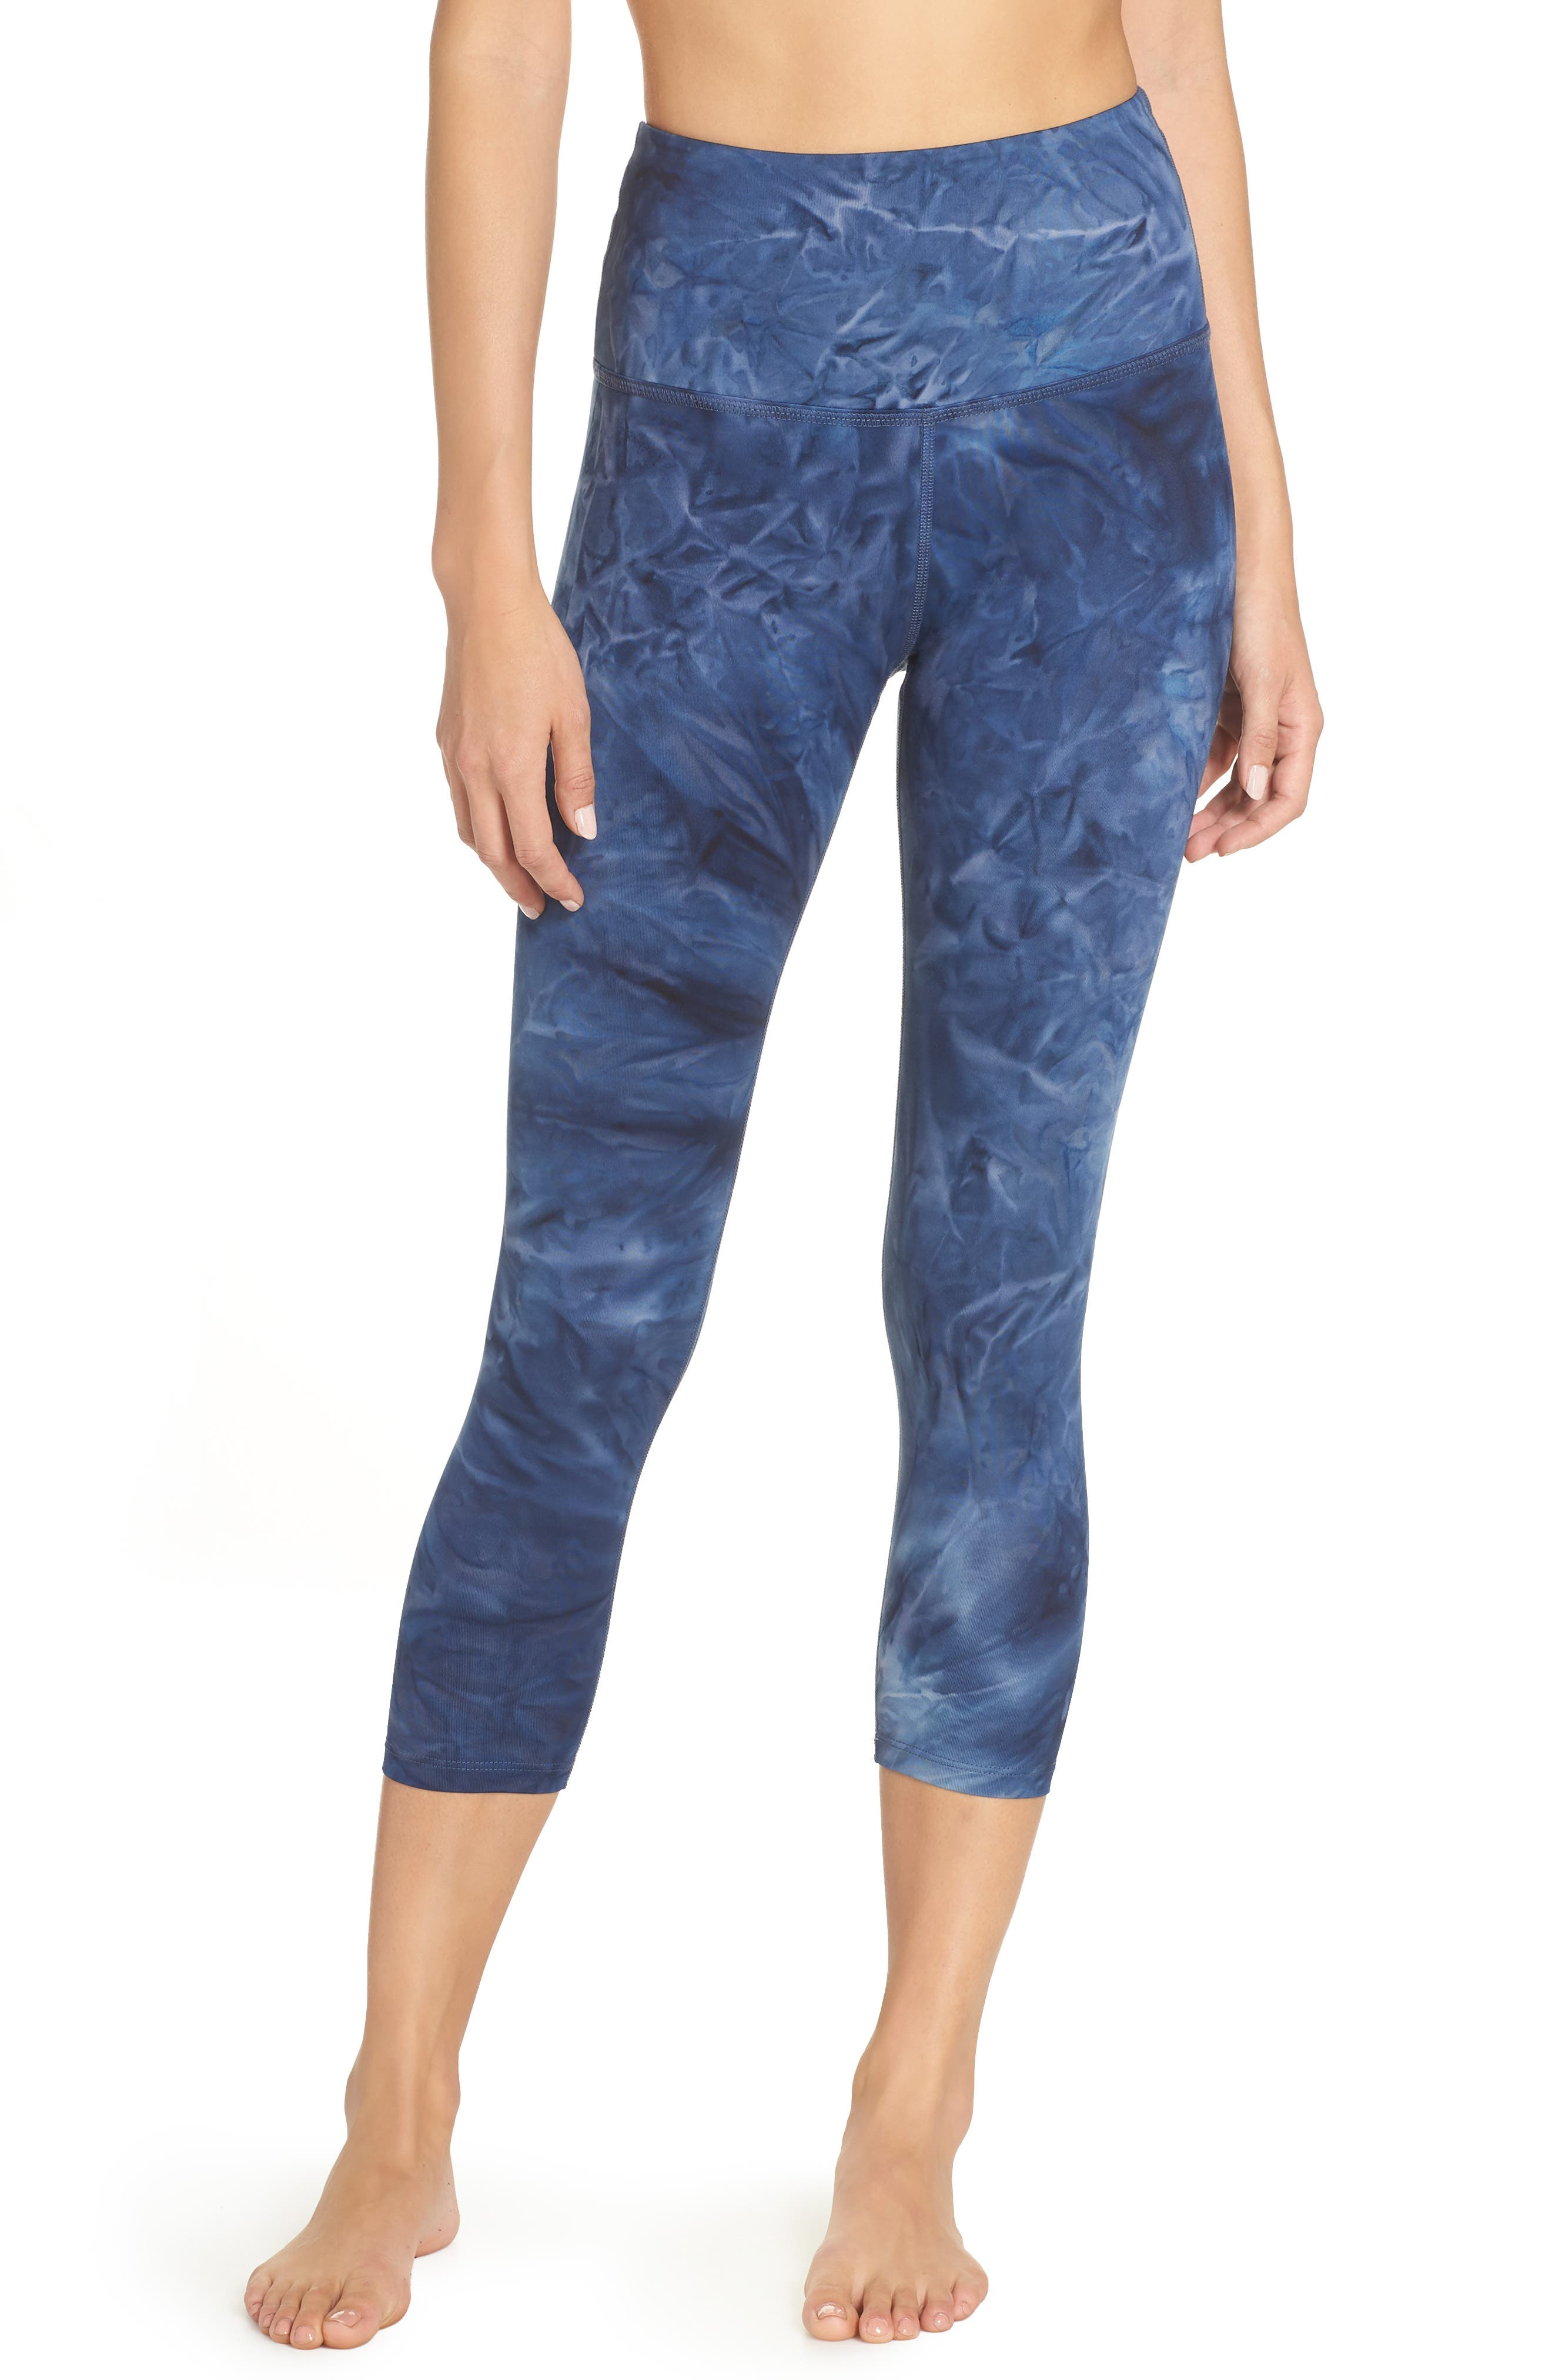 Smokeshow High Waist Leggings,                         Main,                         color, 461